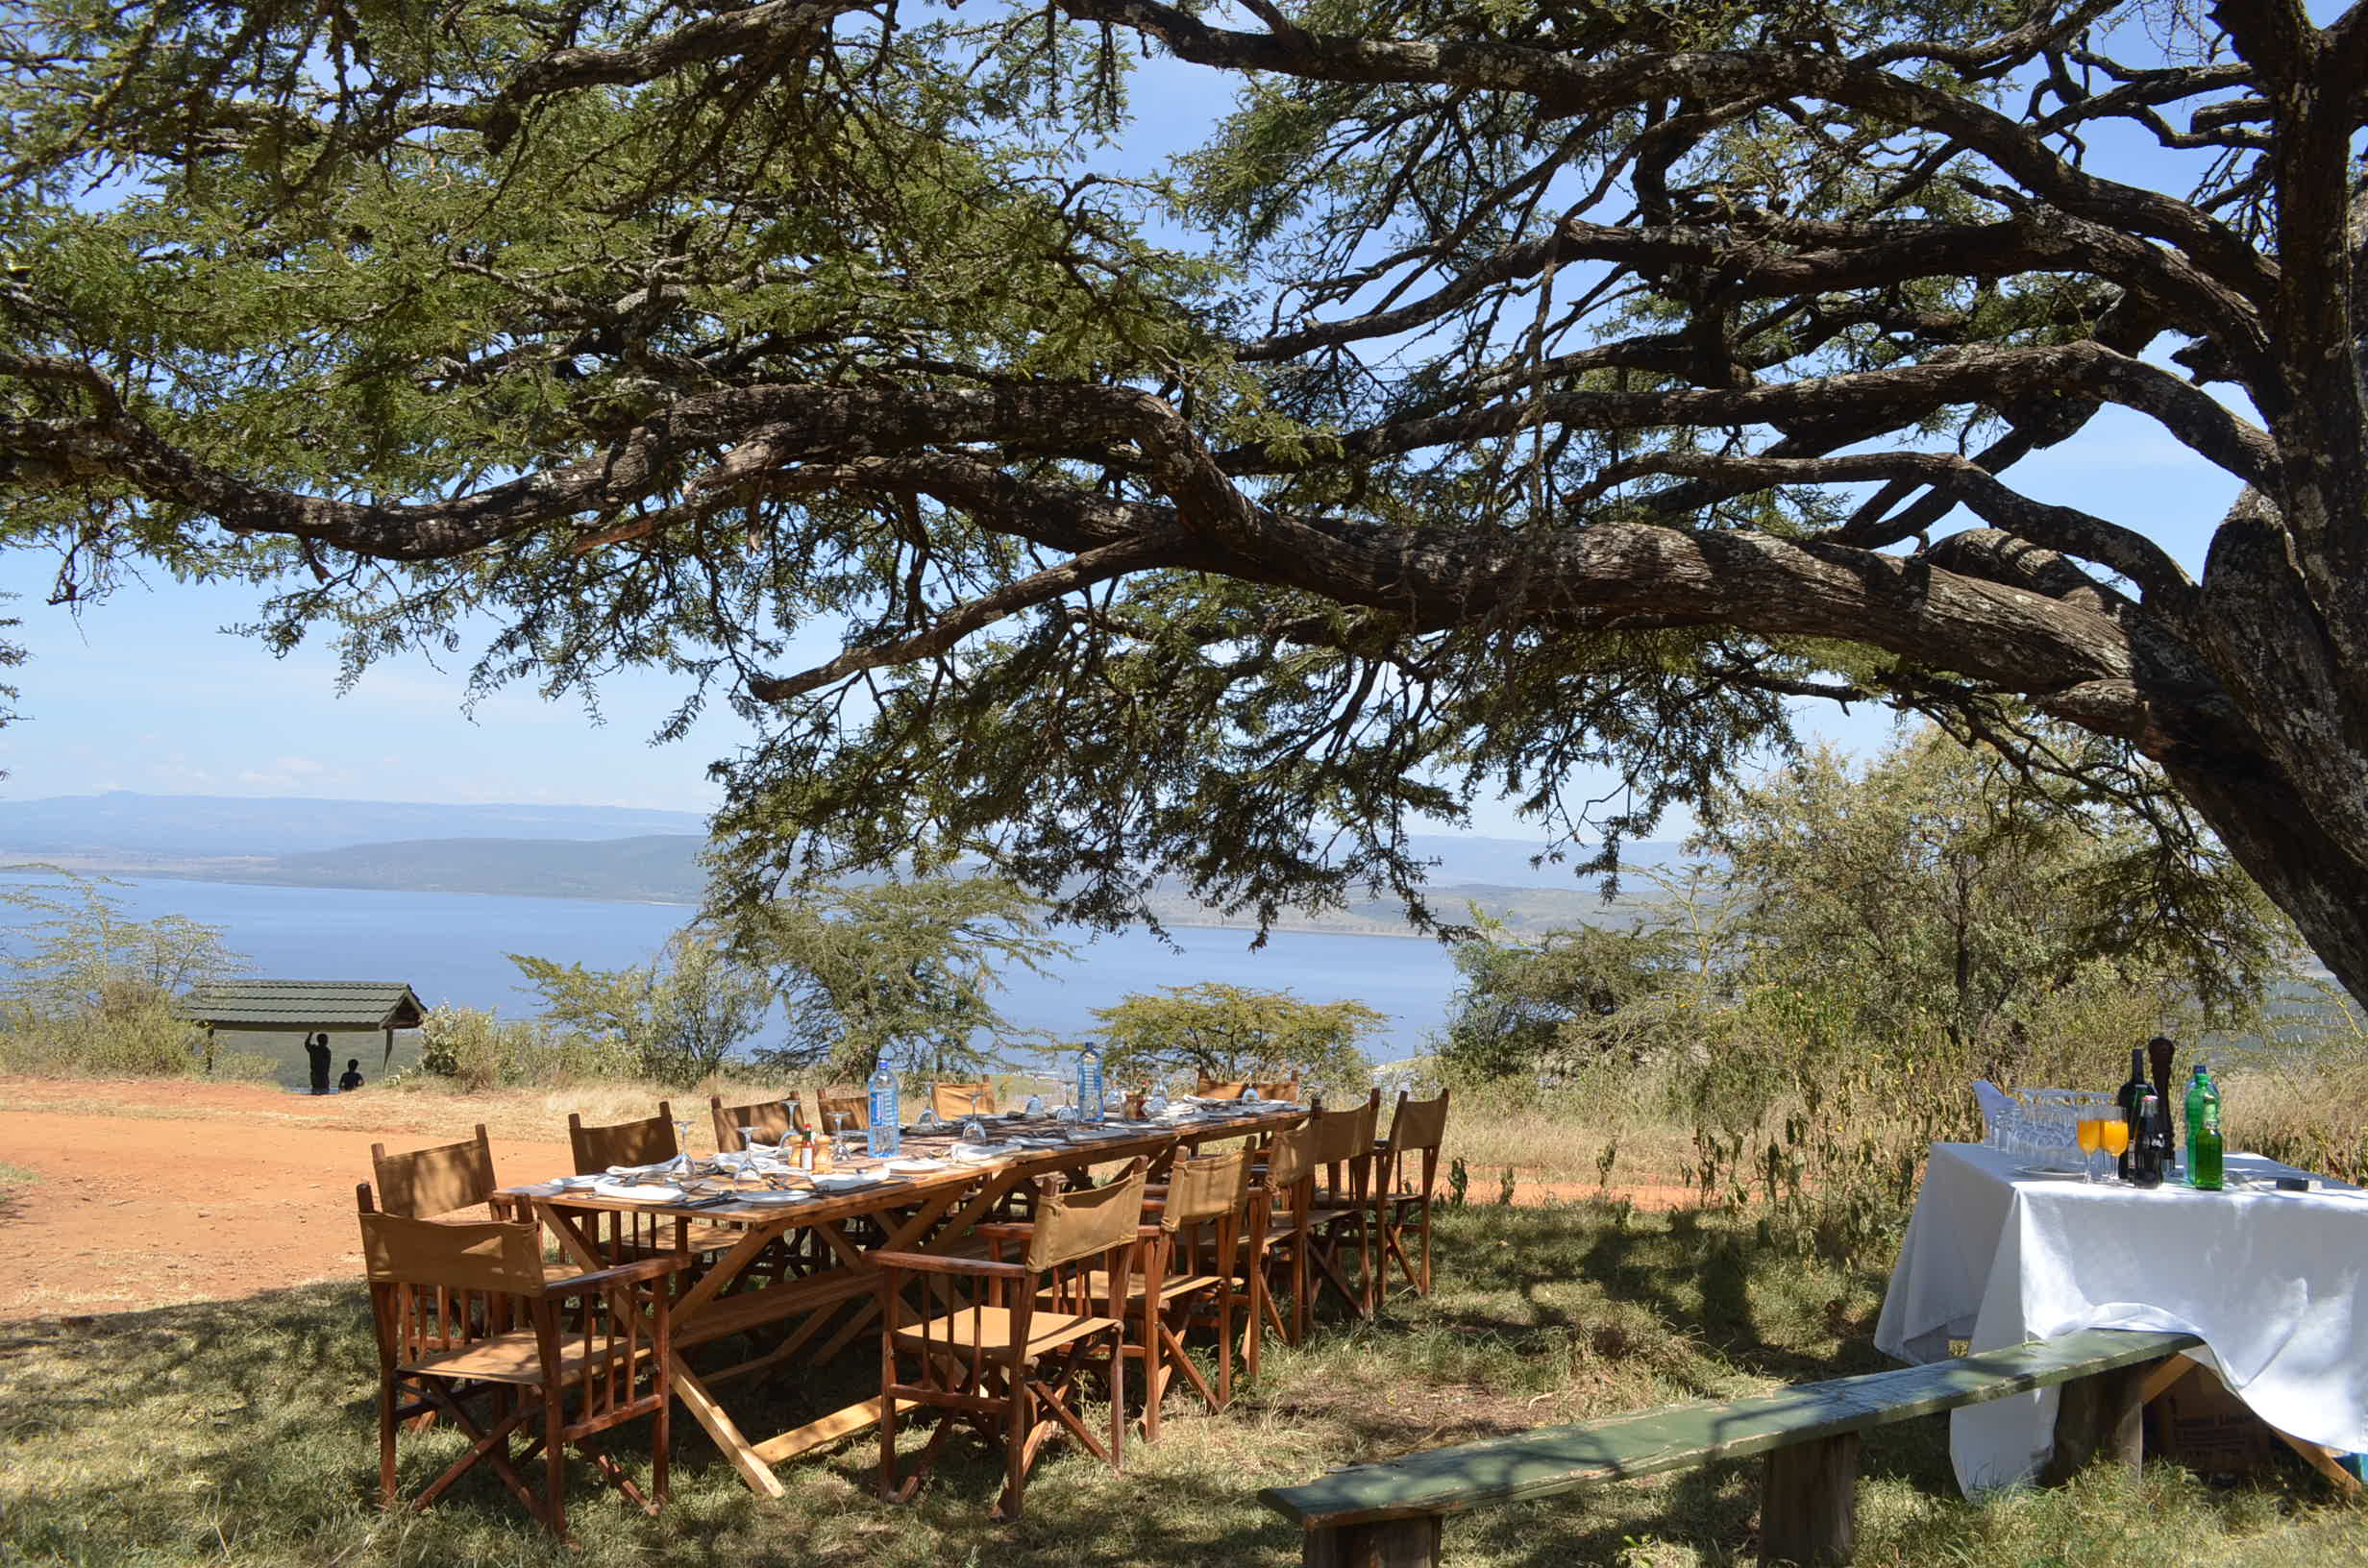 Mbweha Camp - Lake Nakuru (24)